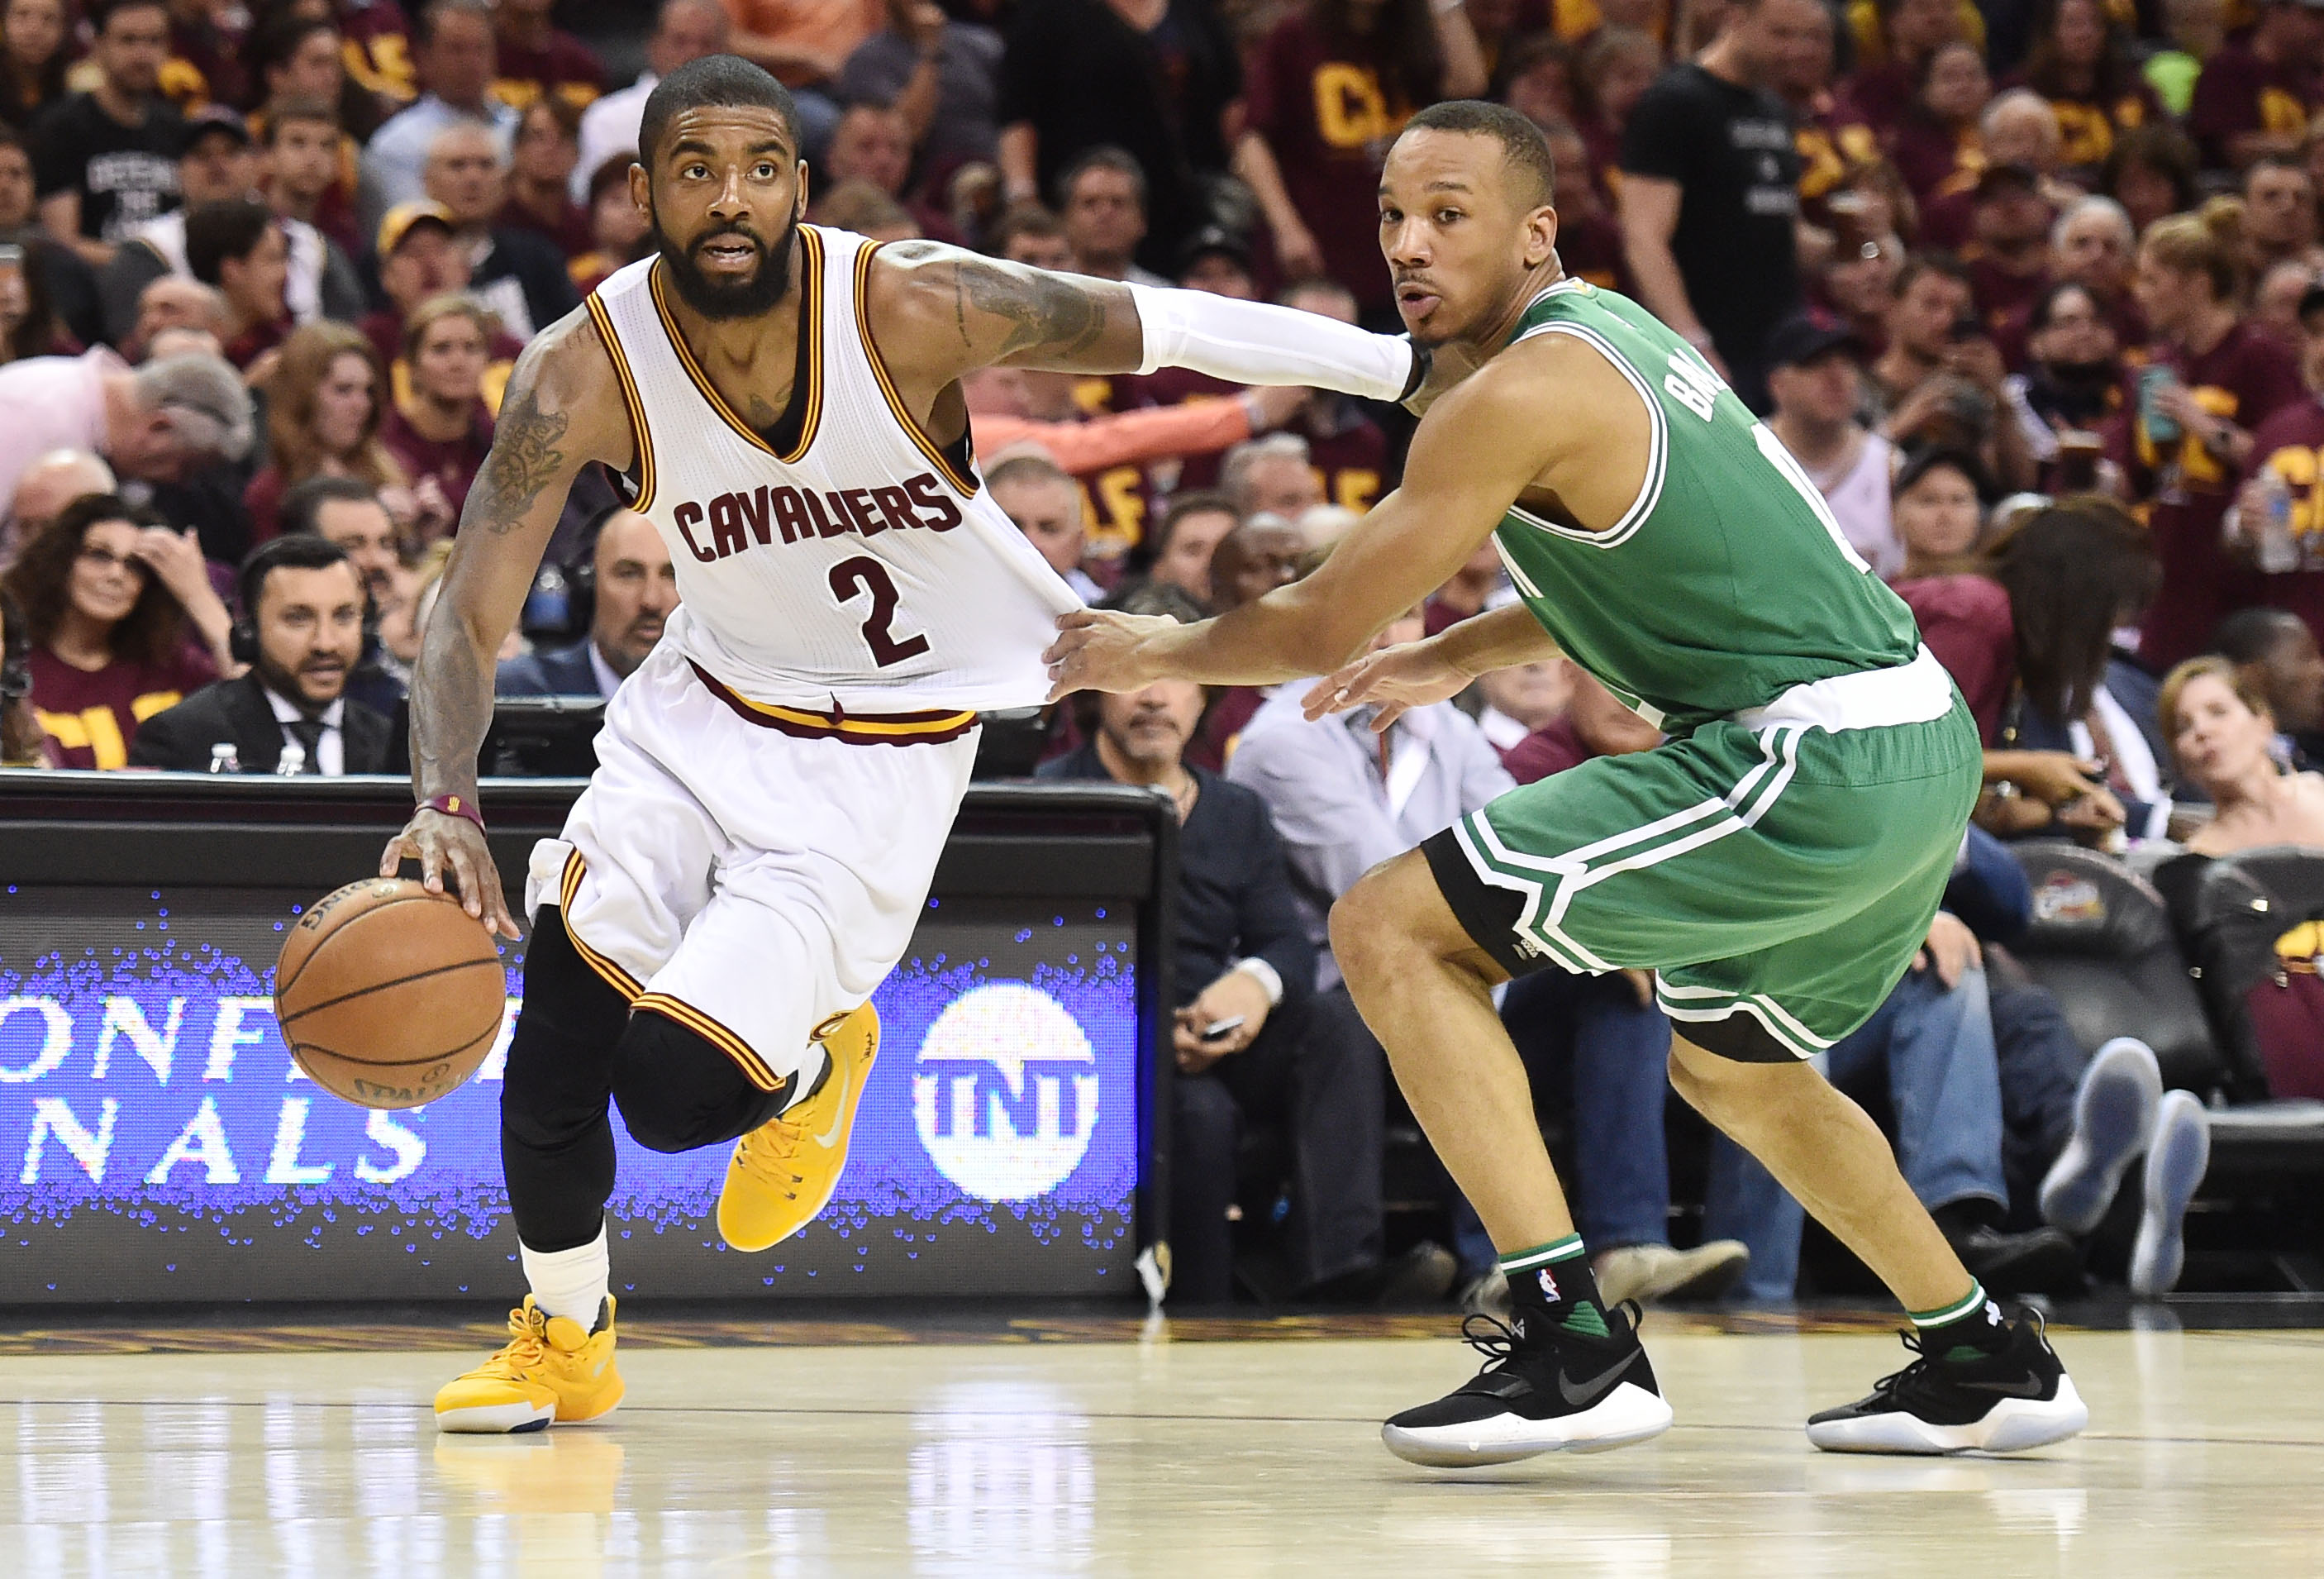 b74c6c6e5283 Kyrie Irving has Redefined Isolation Basketball - VICE